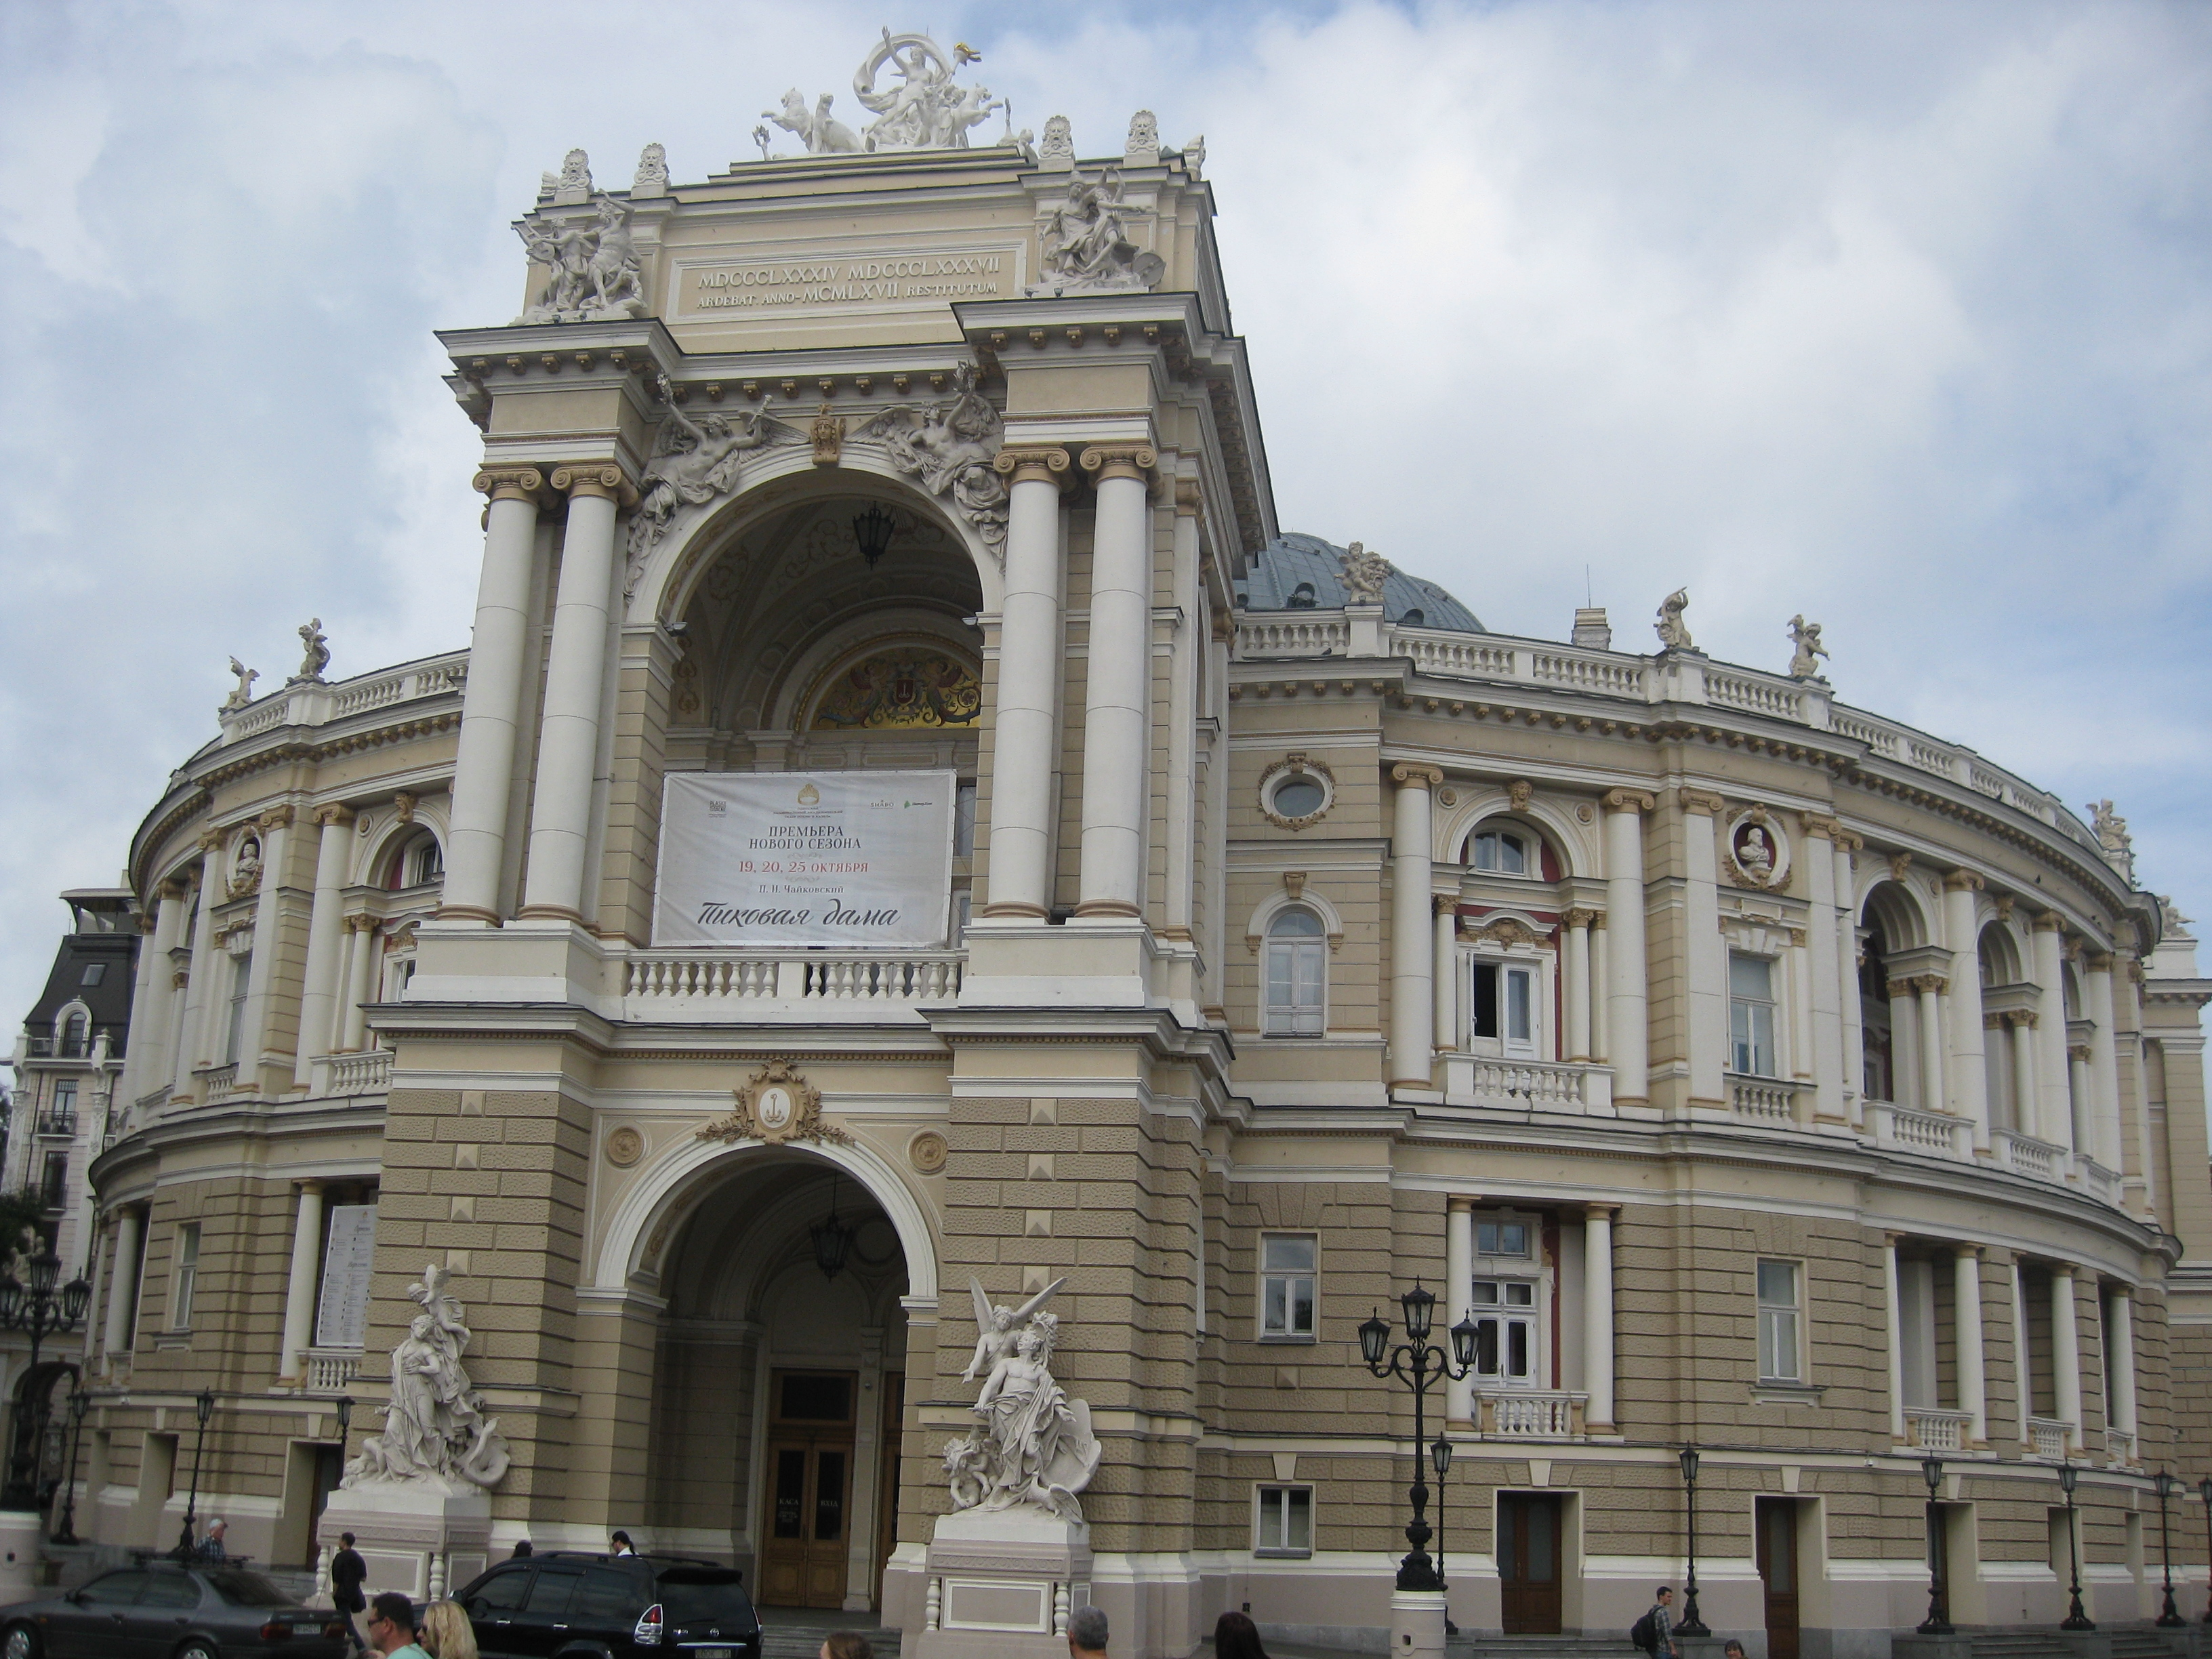 Odessa opera and ballet theater facade.